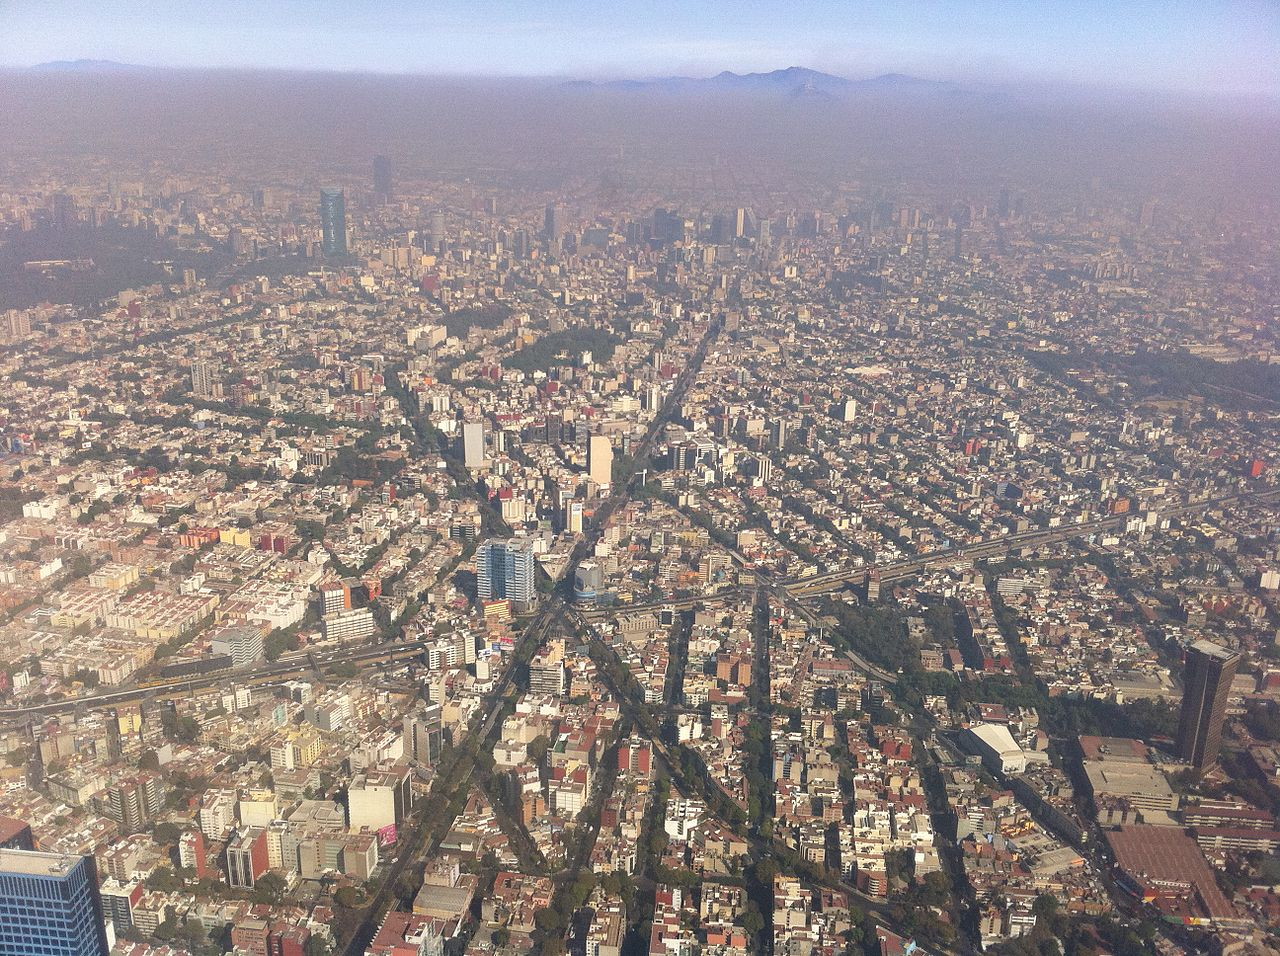 Mexico City Crowded Streets